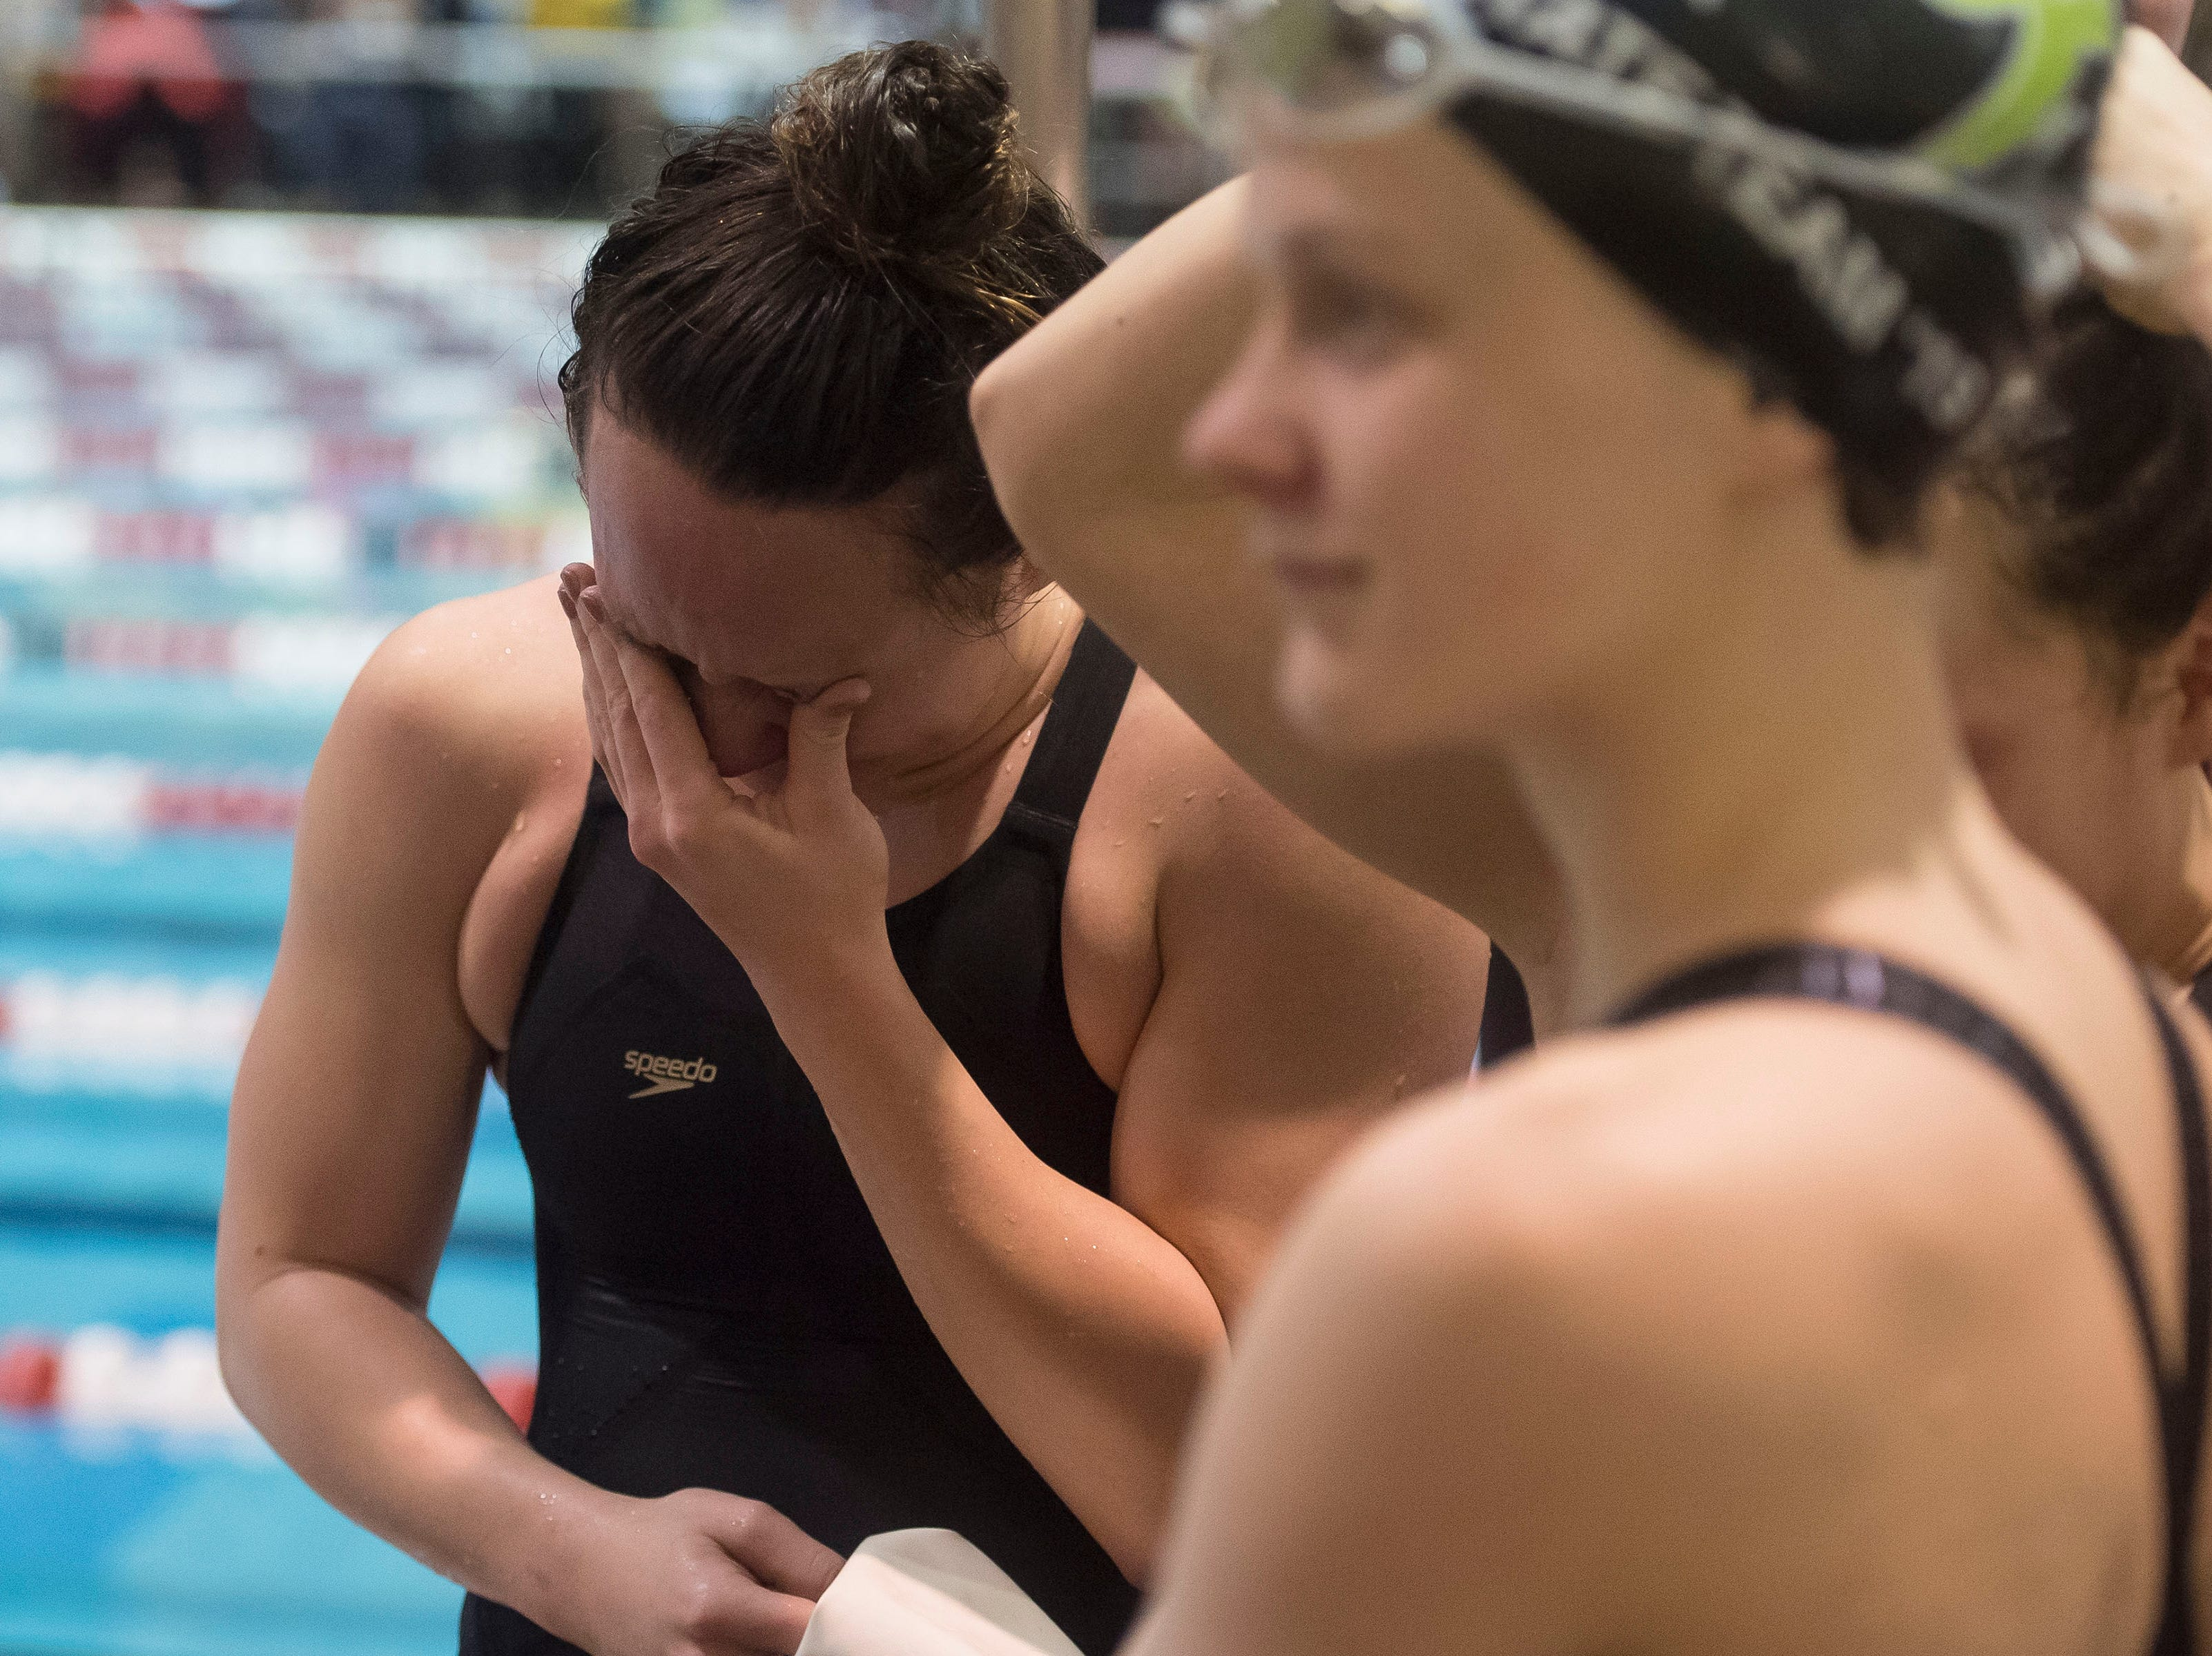 Fossil Ridge senior Coleen Gillilan fights back tears after helping to win the women's 400 yard freestyle relay on Saturday, Feb. 9, 2019, at Veterans Memorial Aquatic Center in Thornton, Colo.